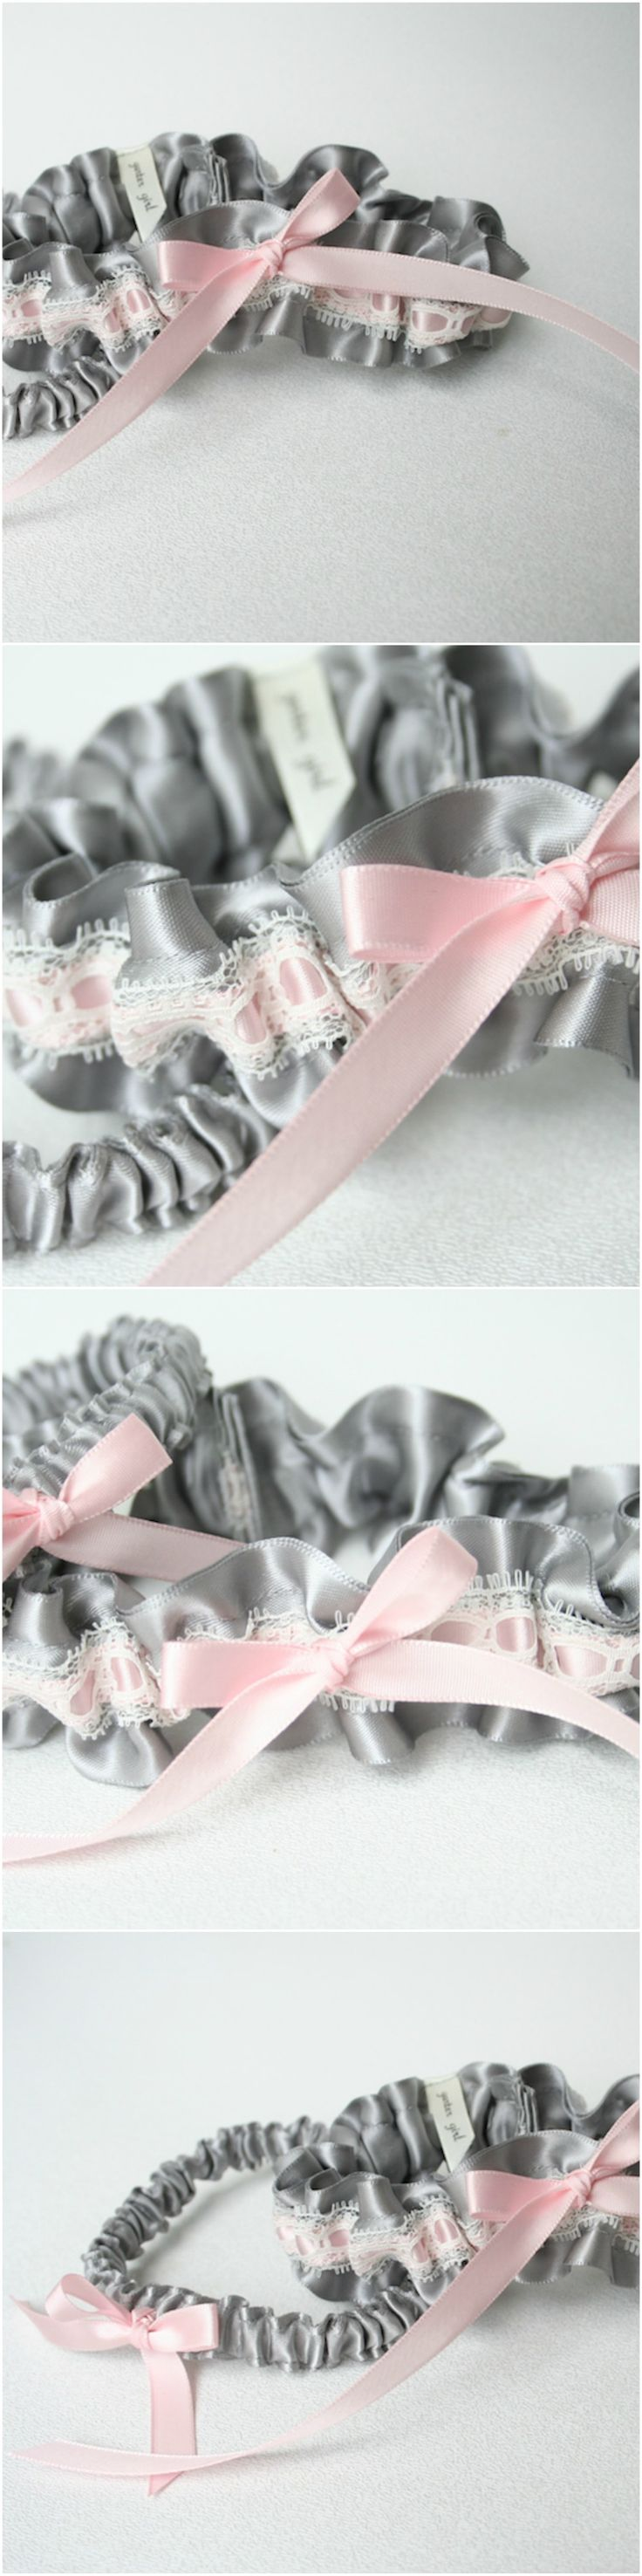 Custom Gray, Pink and Ivory Lace Wedding Garter-by The Garter Girl  Wedding Garter Toss, Wedding Garter Ideas, Wedding Garter, Wedding Garter Traditions, Wedding Garter Leg, Plus Size Wedding Garters, Custom Wedding Garters, Heirloom Wedding Garters, Something Blue Wedding Garter. WORLDWIDE SHIPPING - HANDMADE HEIRLOOMS Click to shop online now!